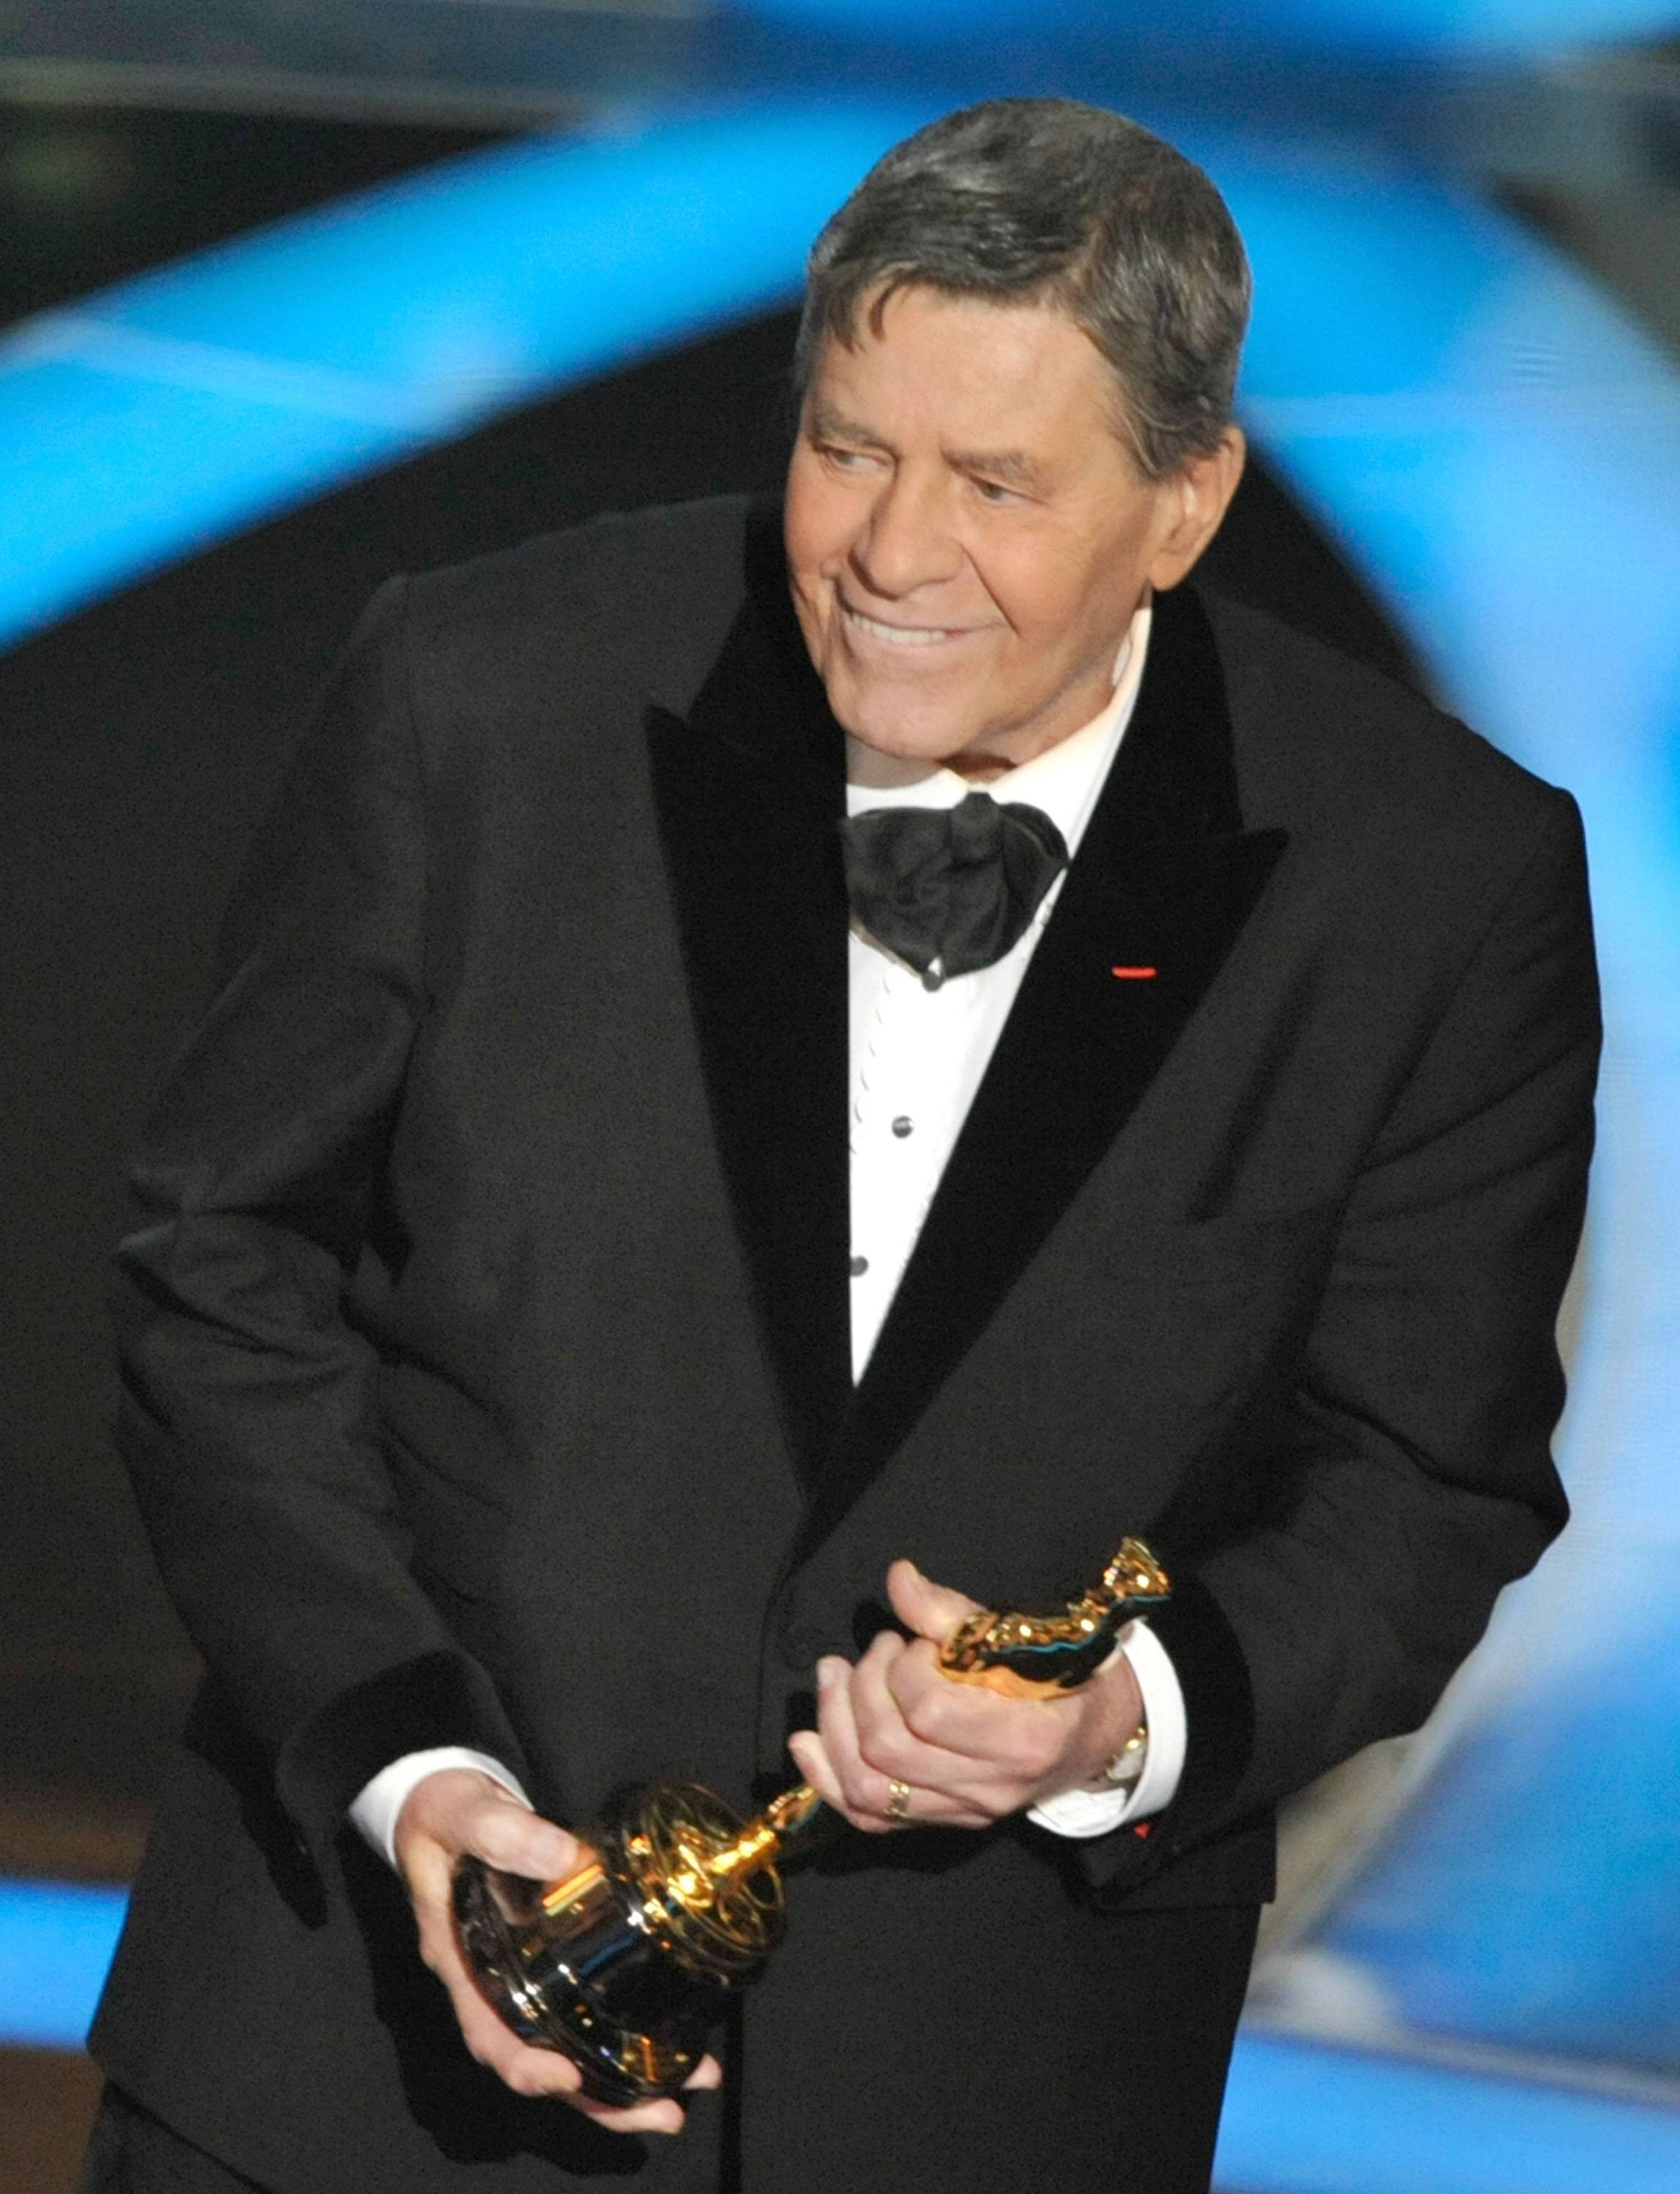 Actor Jerry Lewis accepts the Jean Hersholt Humanitarian Award during the 81st Annual Academy Awards in February 2009.